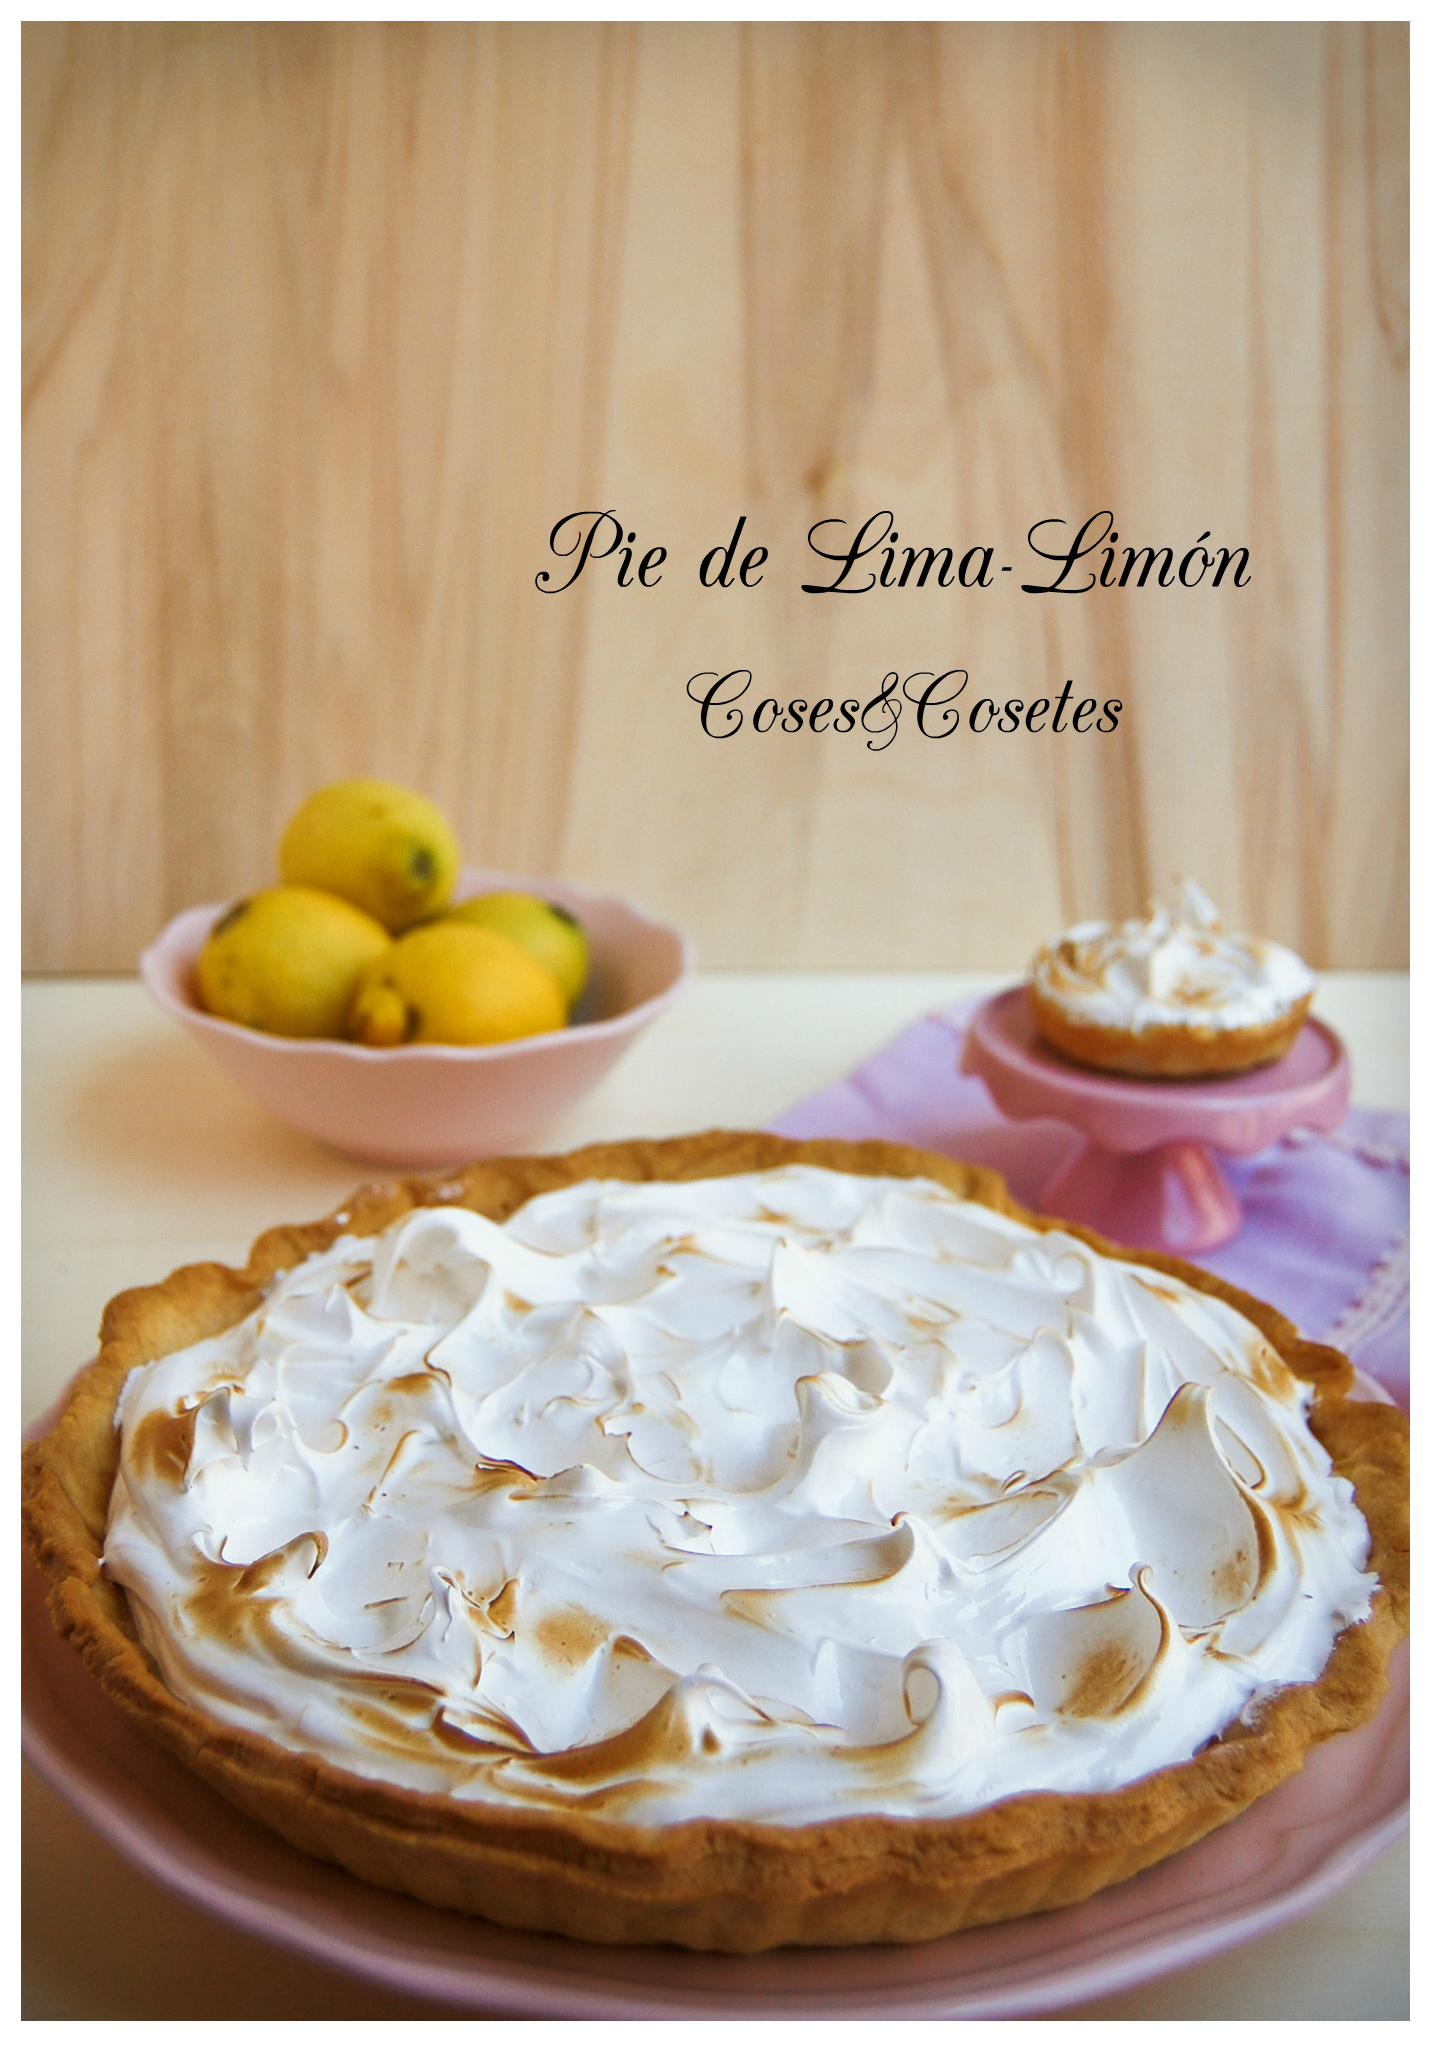 Lima-Lemon Pie1